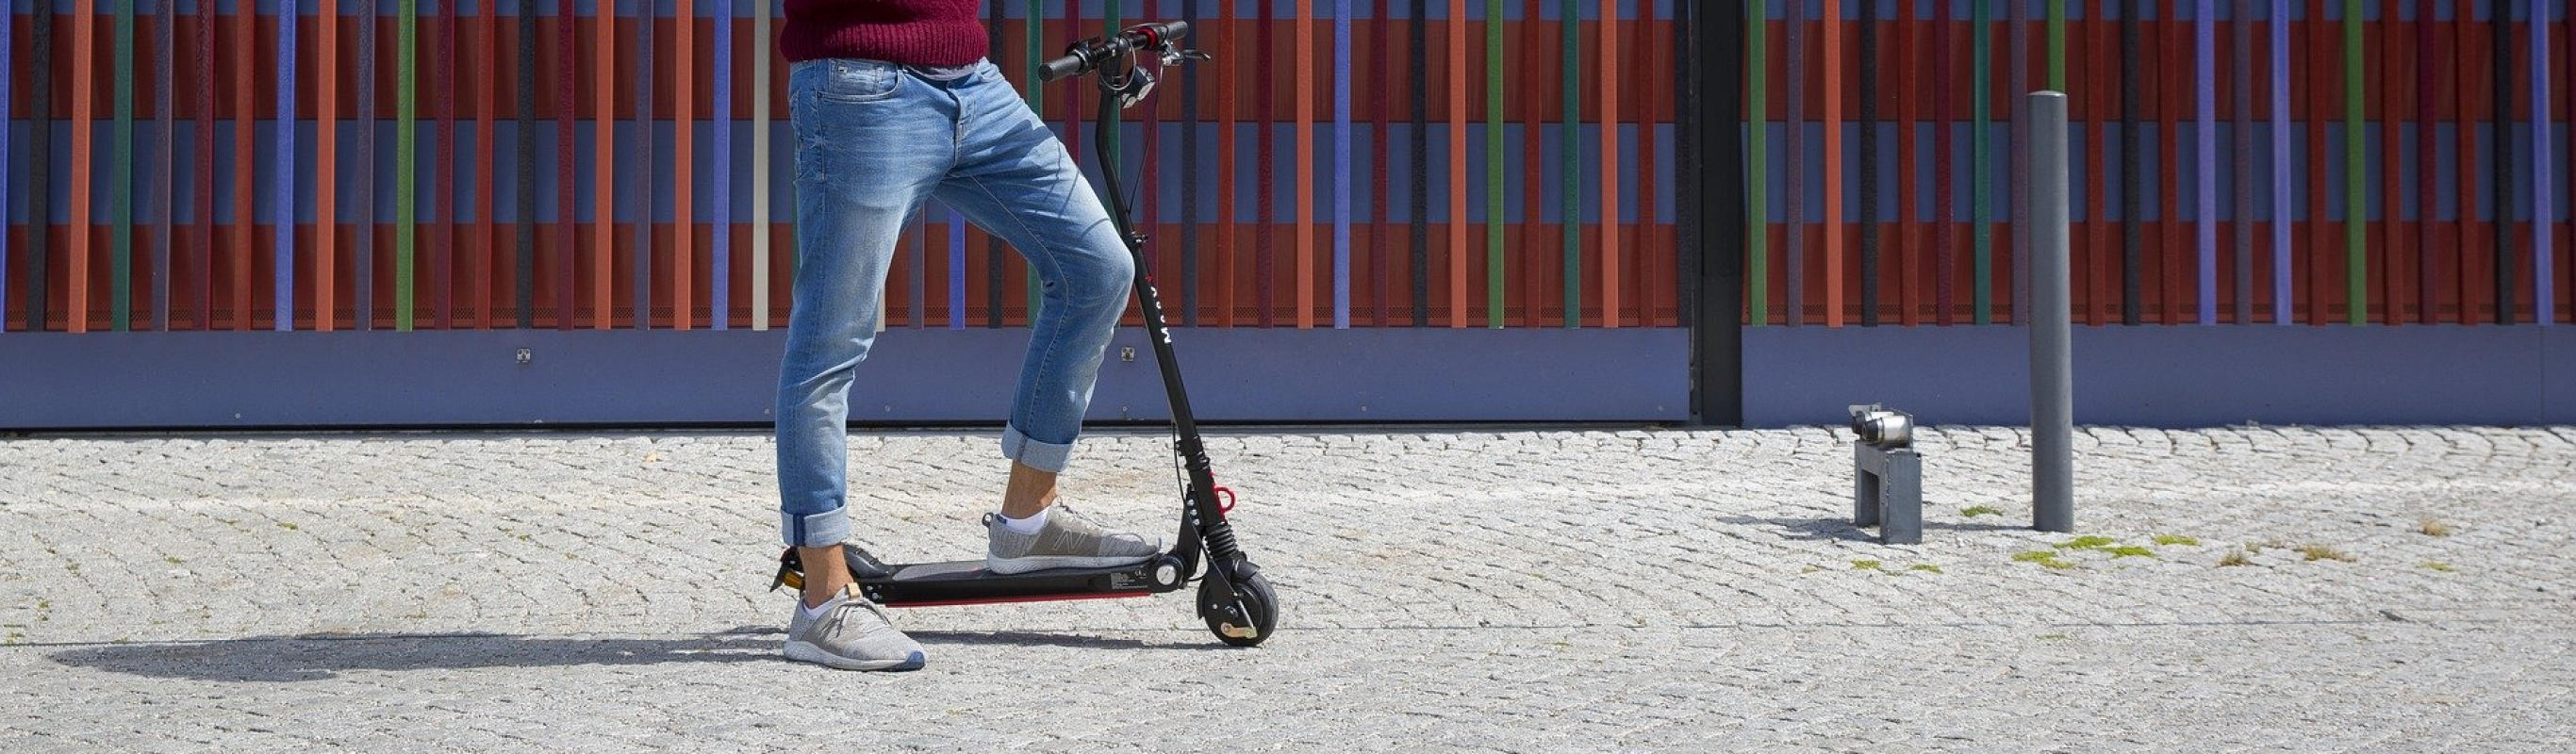 Who can ride an electric scooter and where?